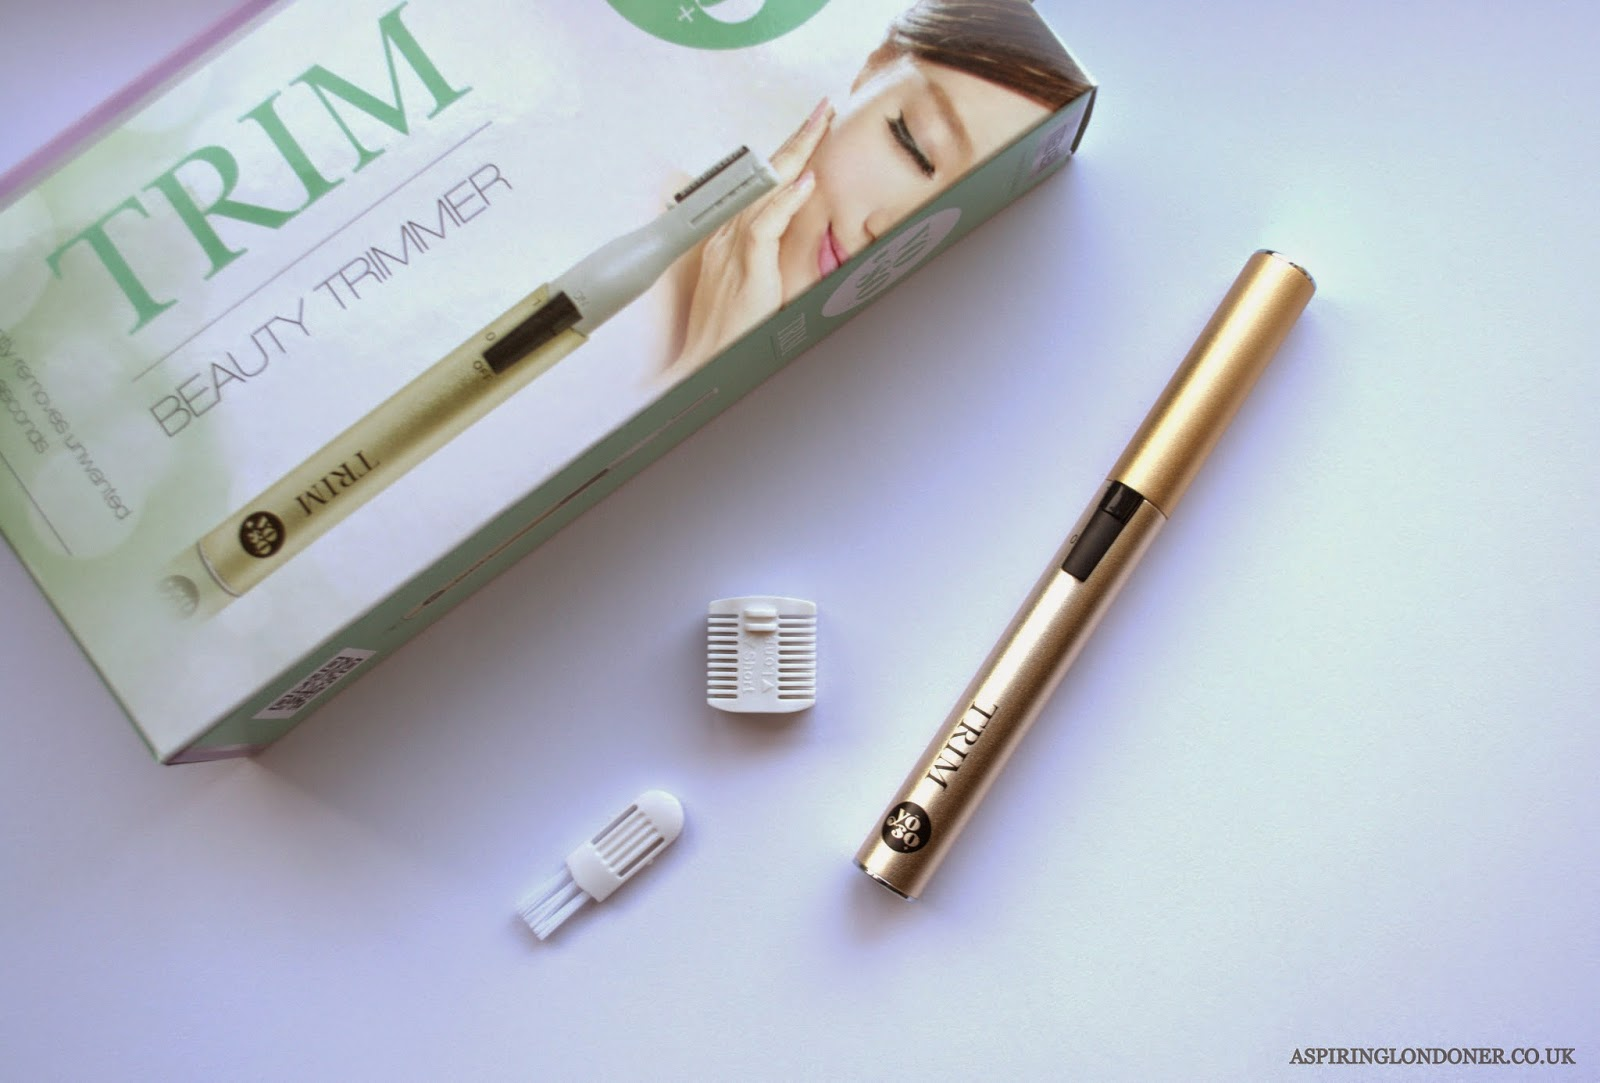 YOSO Trim Beauty Pen Hair Trimmer Review - Aspiring Londoner